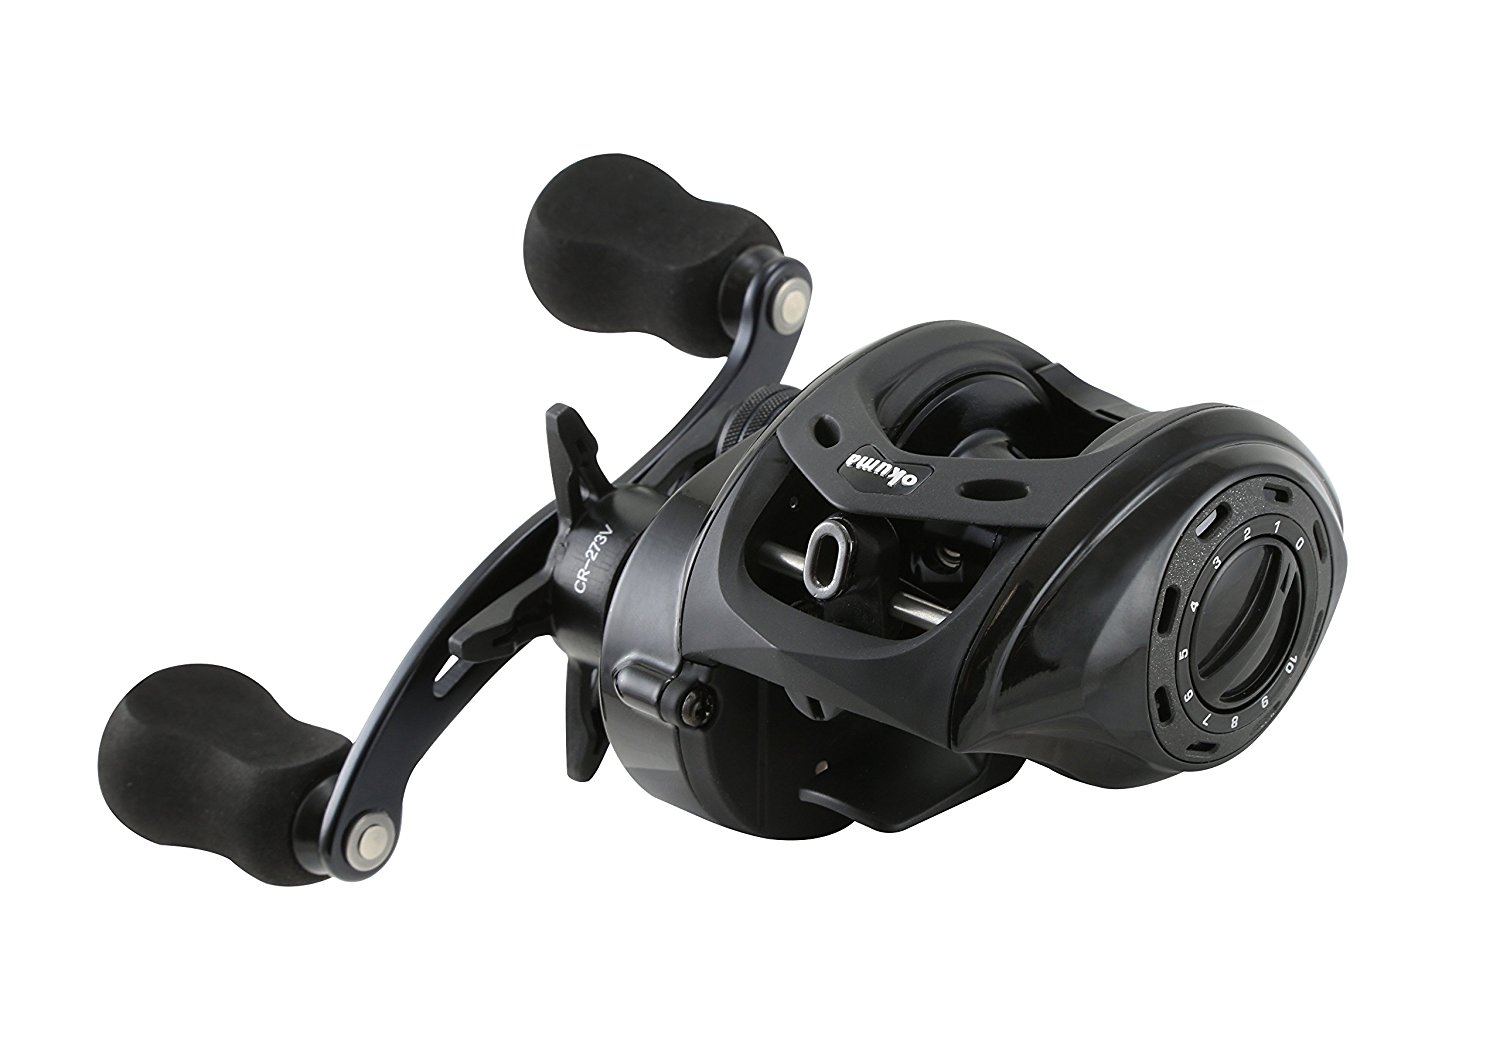 Okuma Cerros Lightweight Low Profile Baitcast Reel